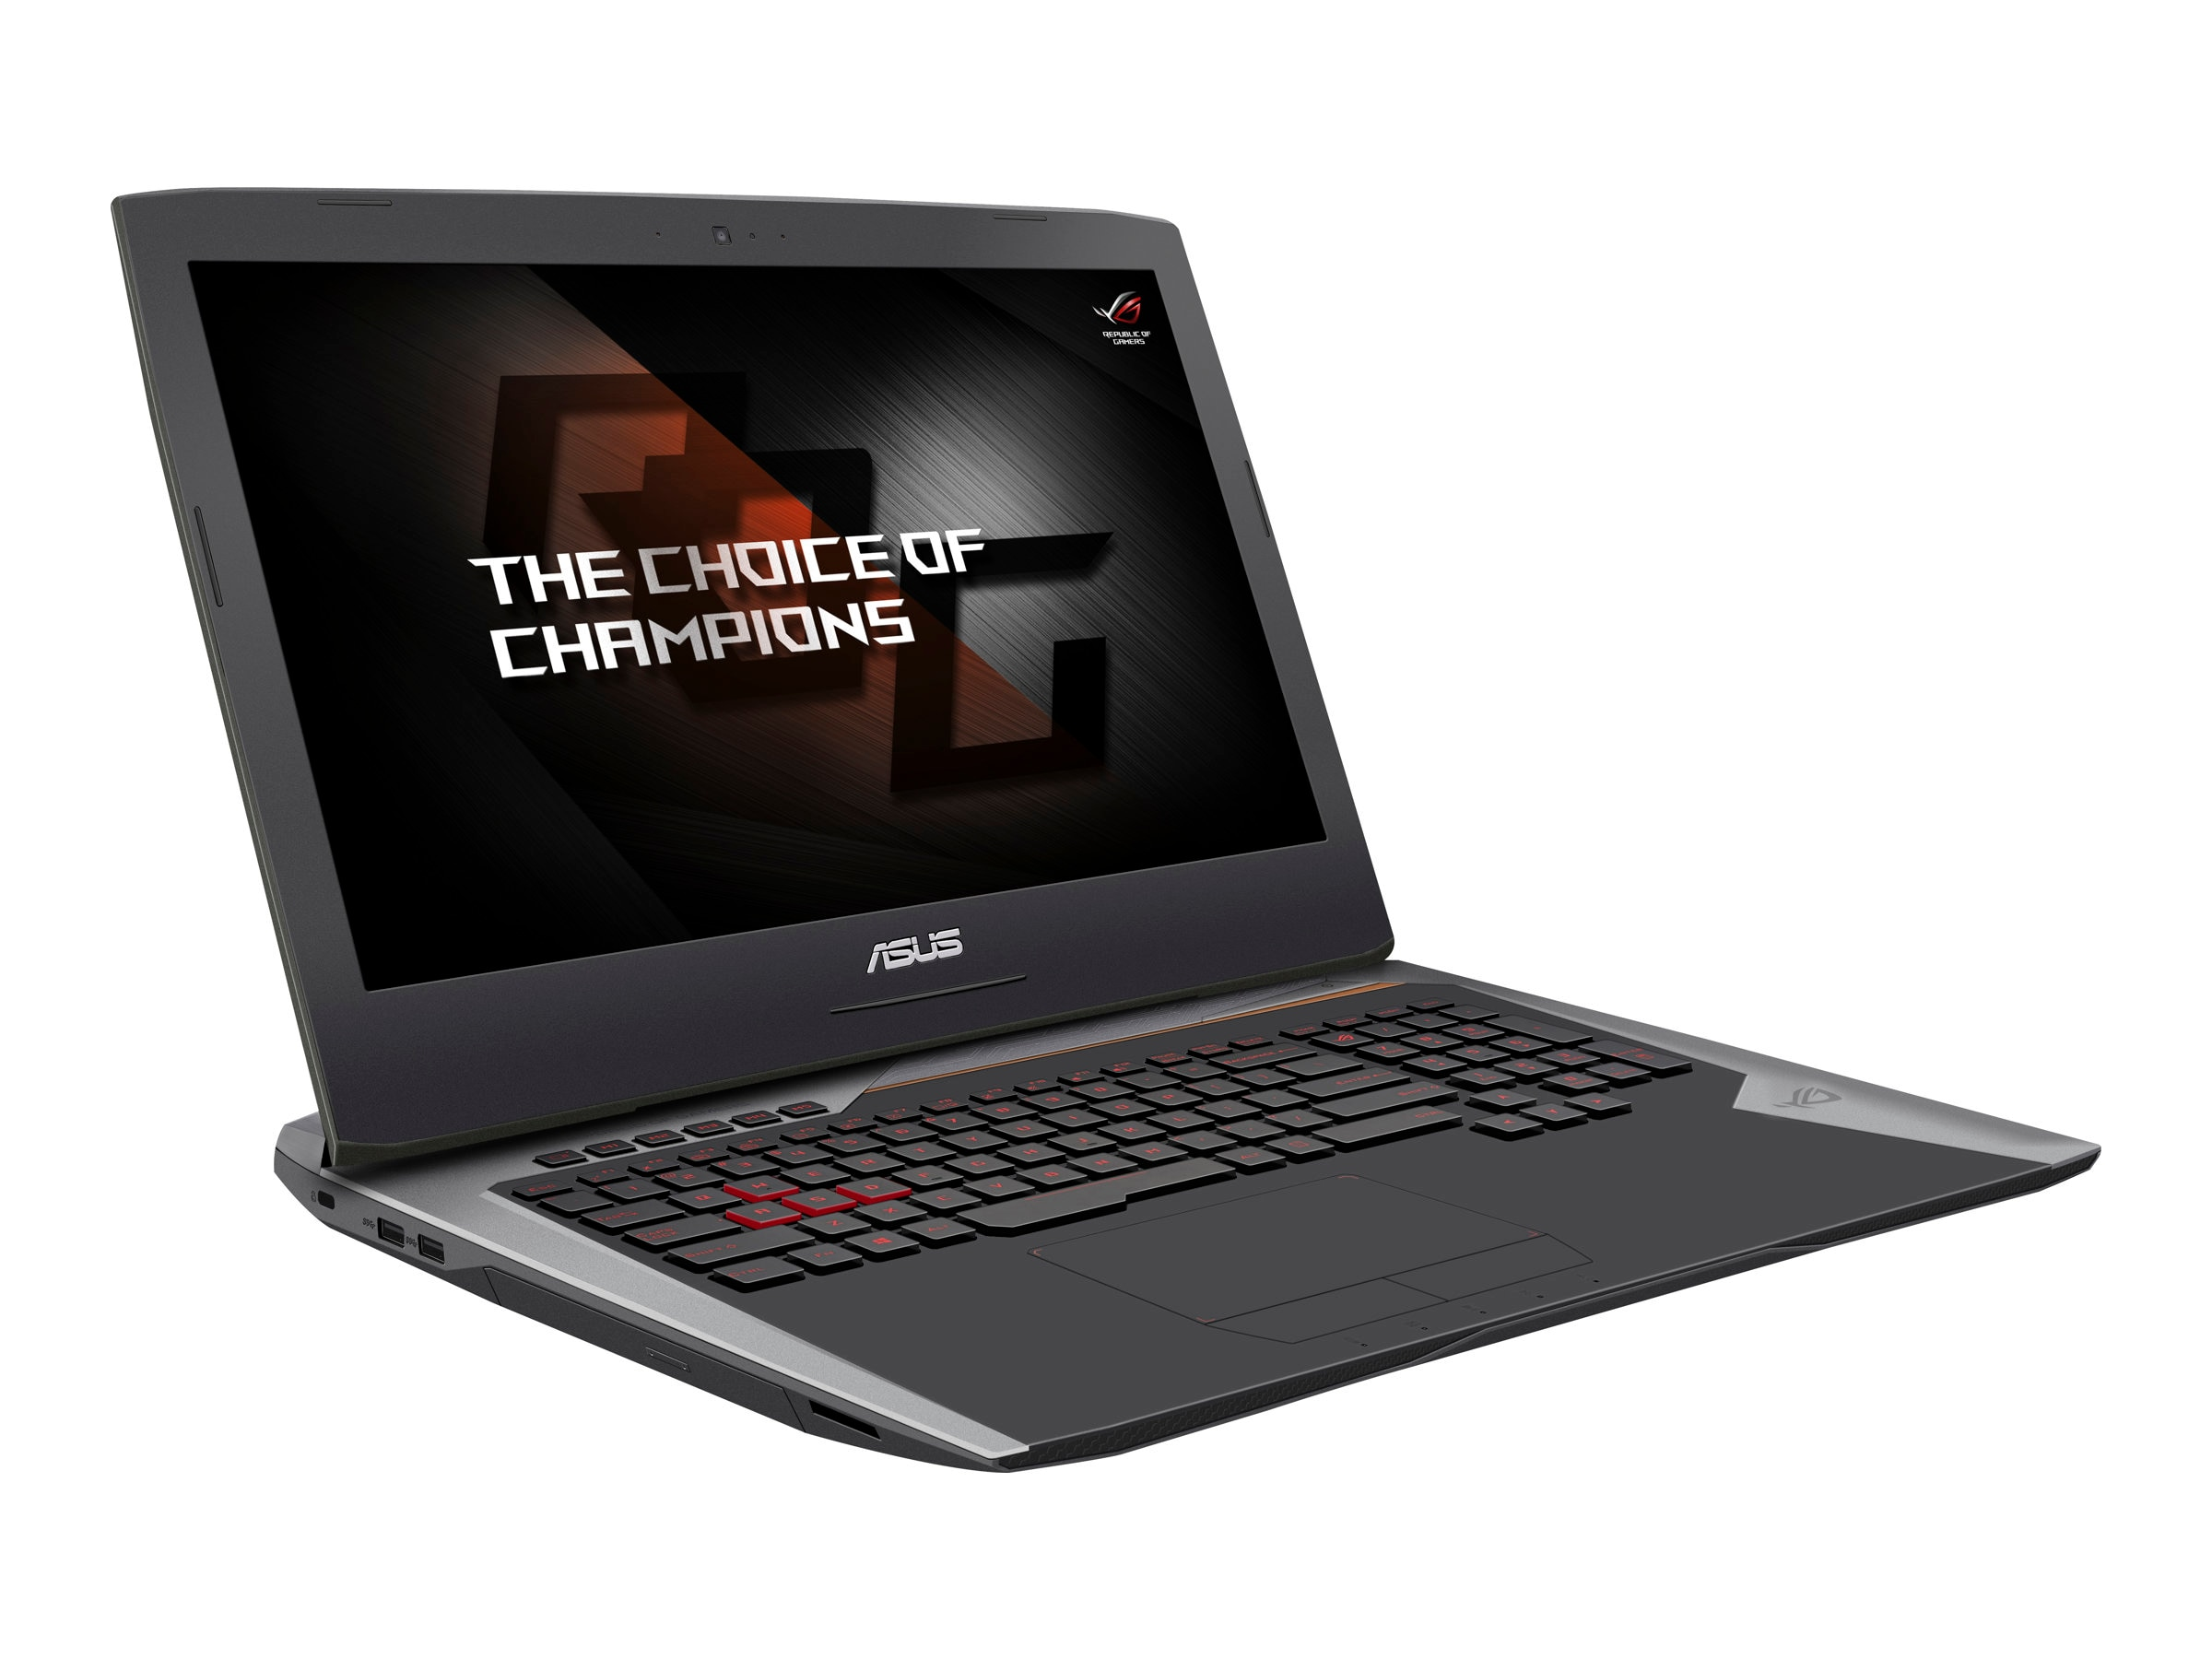 Asus G752VS-RB71 Image 5